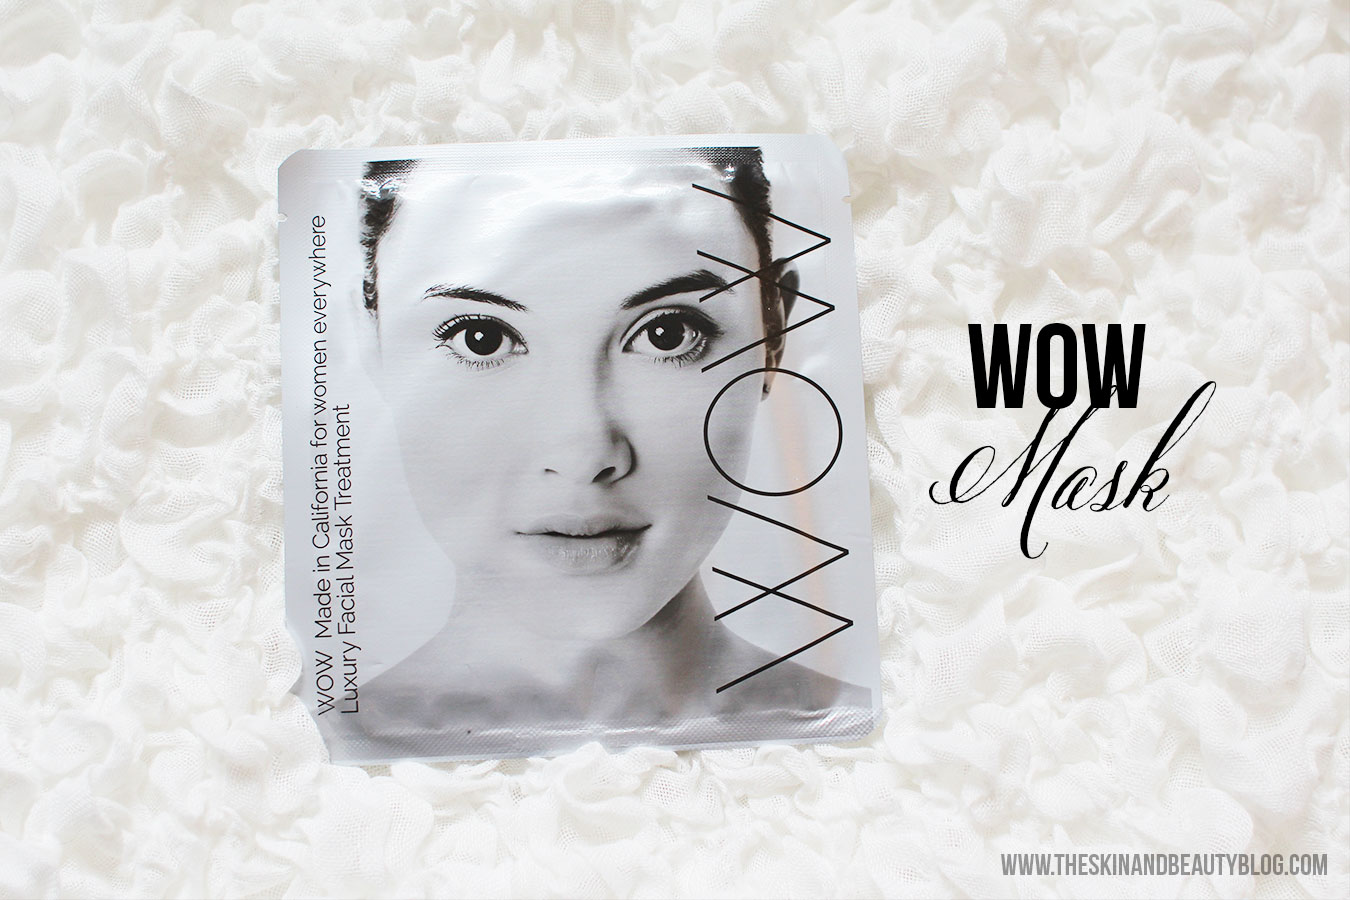 WOW Facial Mask Treatments Review